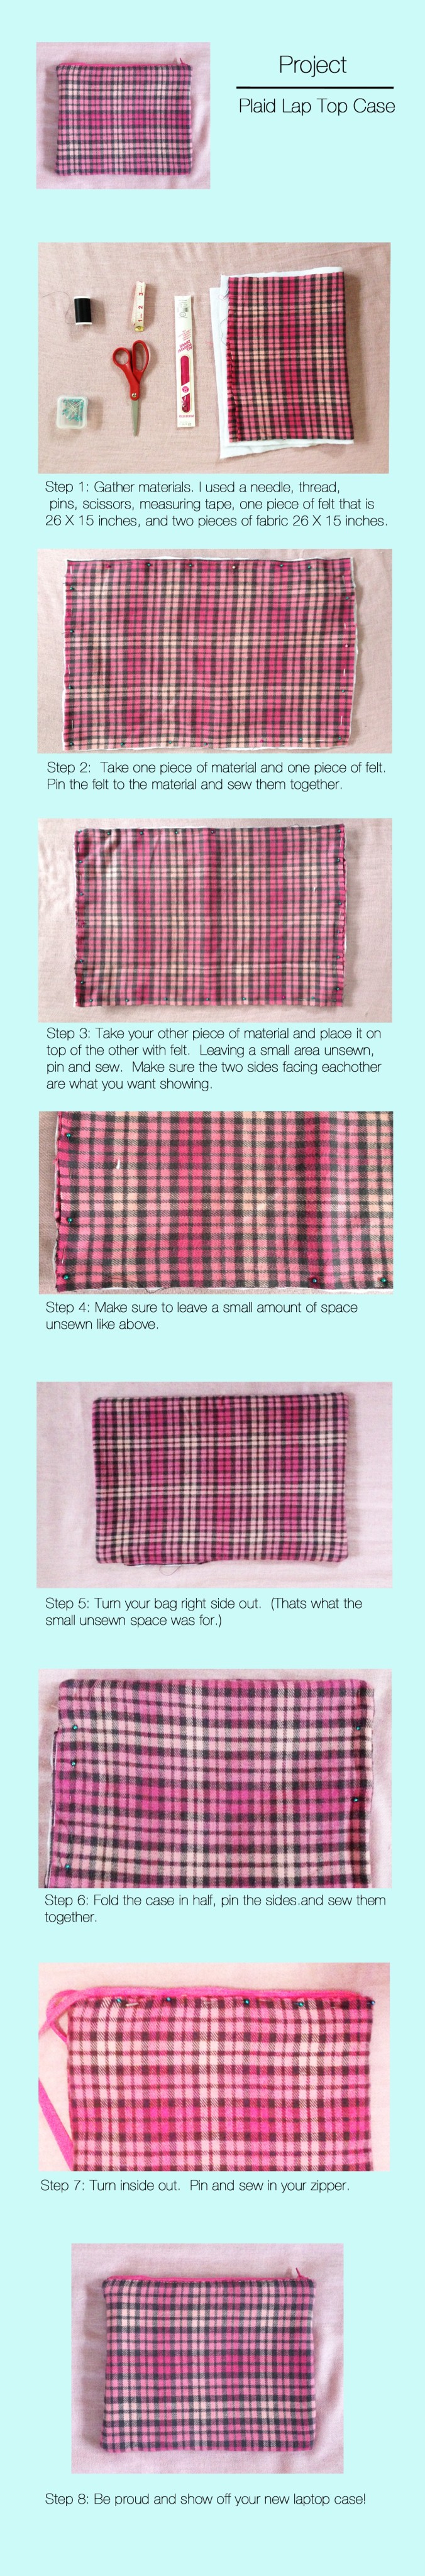 Plaid Lap Top Case